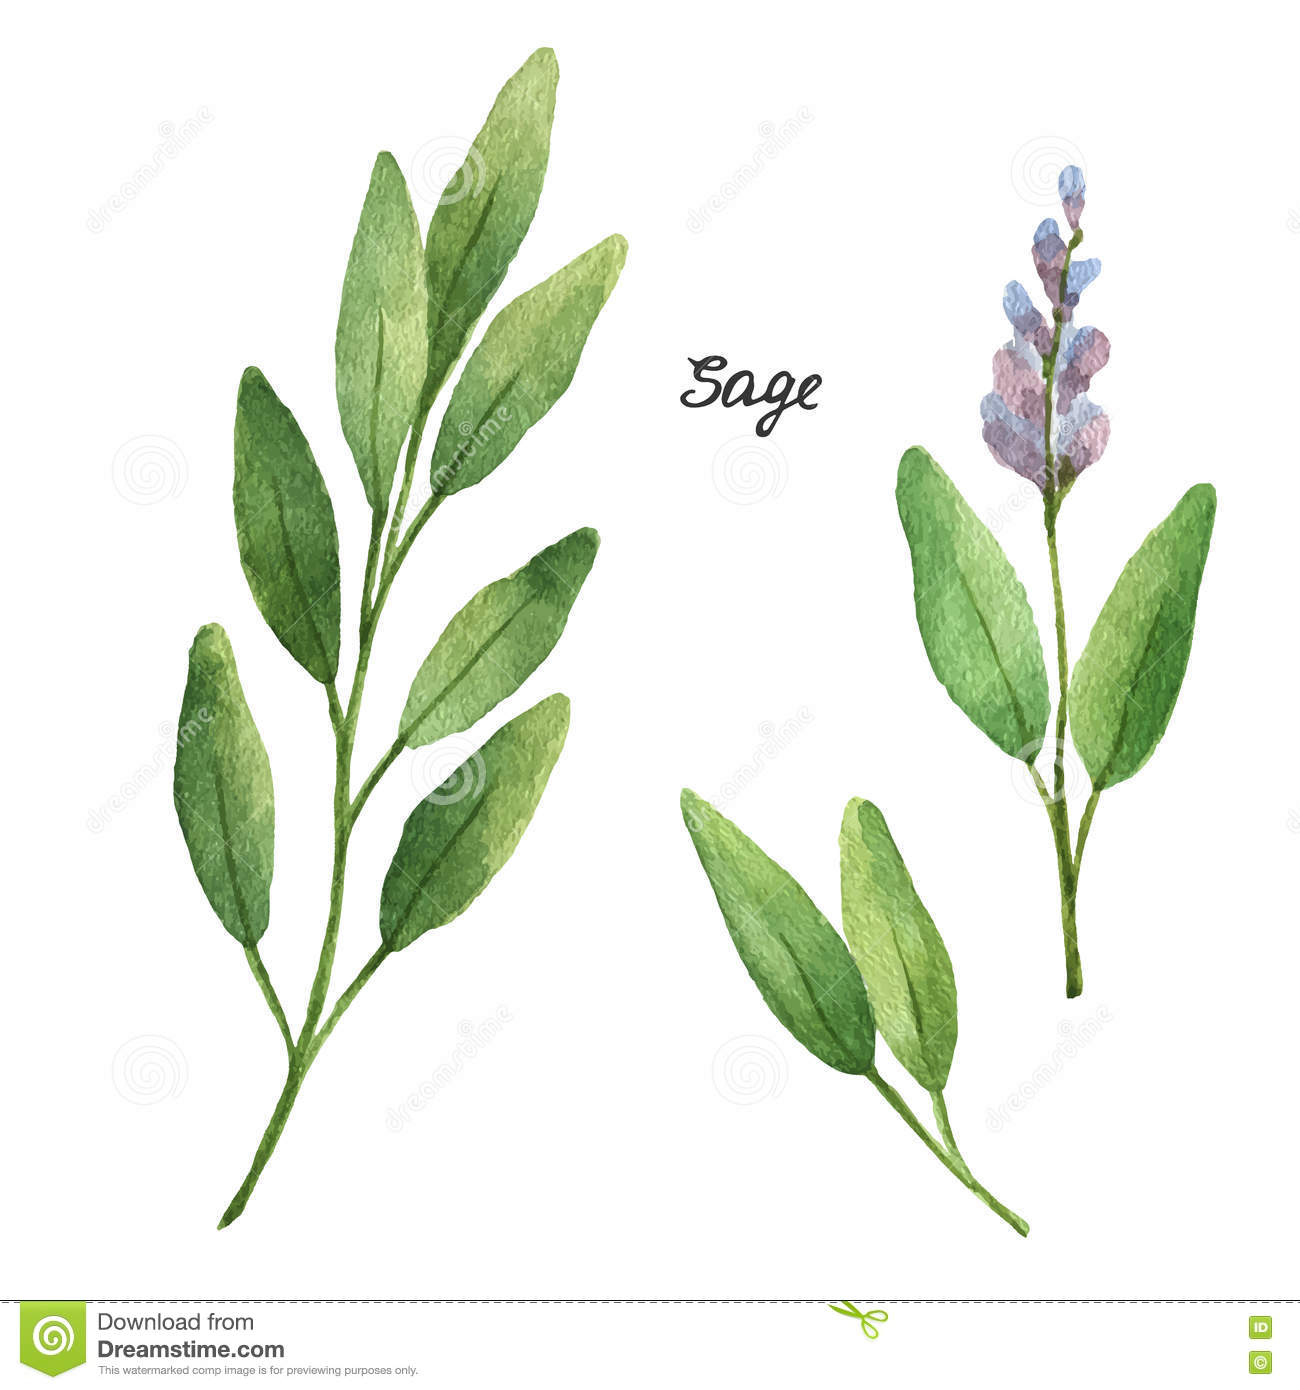 Sage Illustration Watercolor Bran...